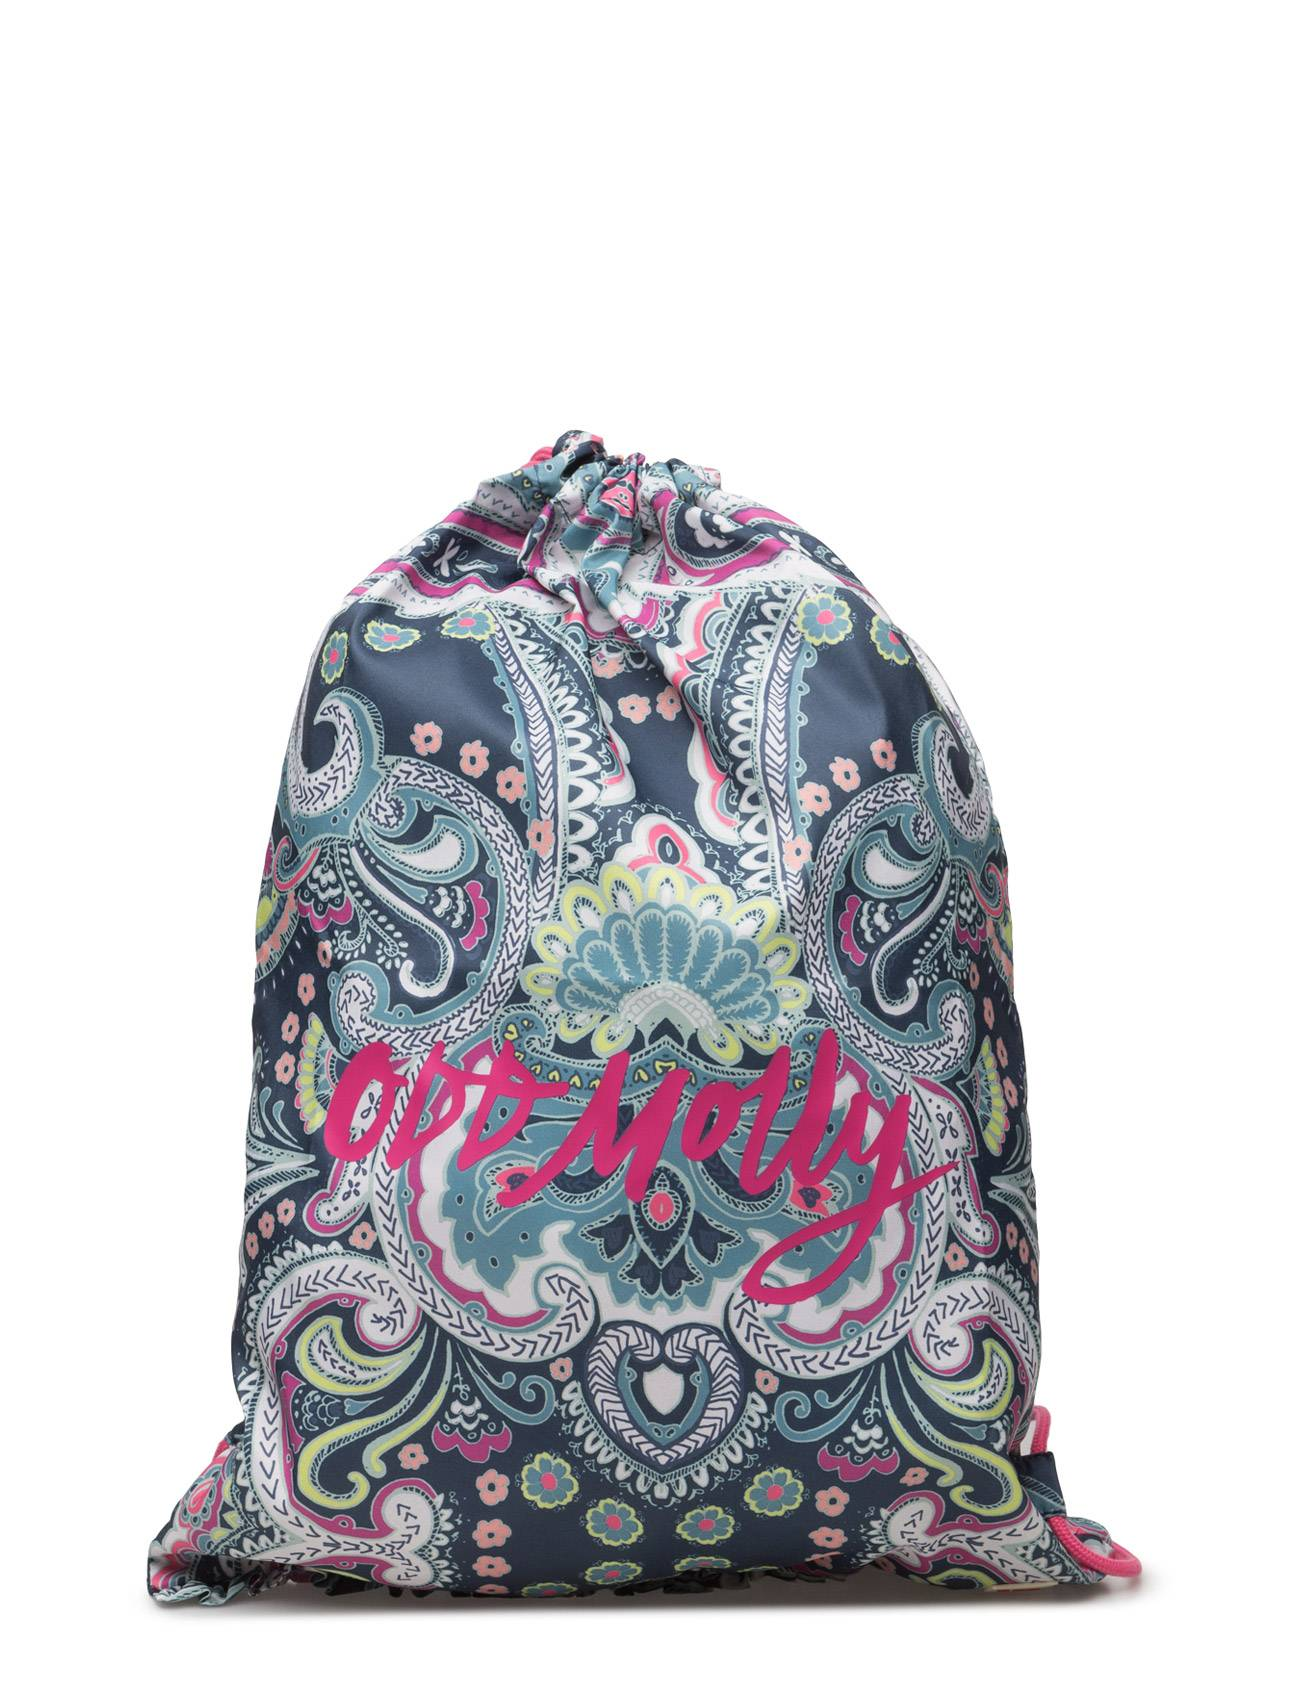 ODD MOLLY ACTIVE WEAR Upbeat Back Packer